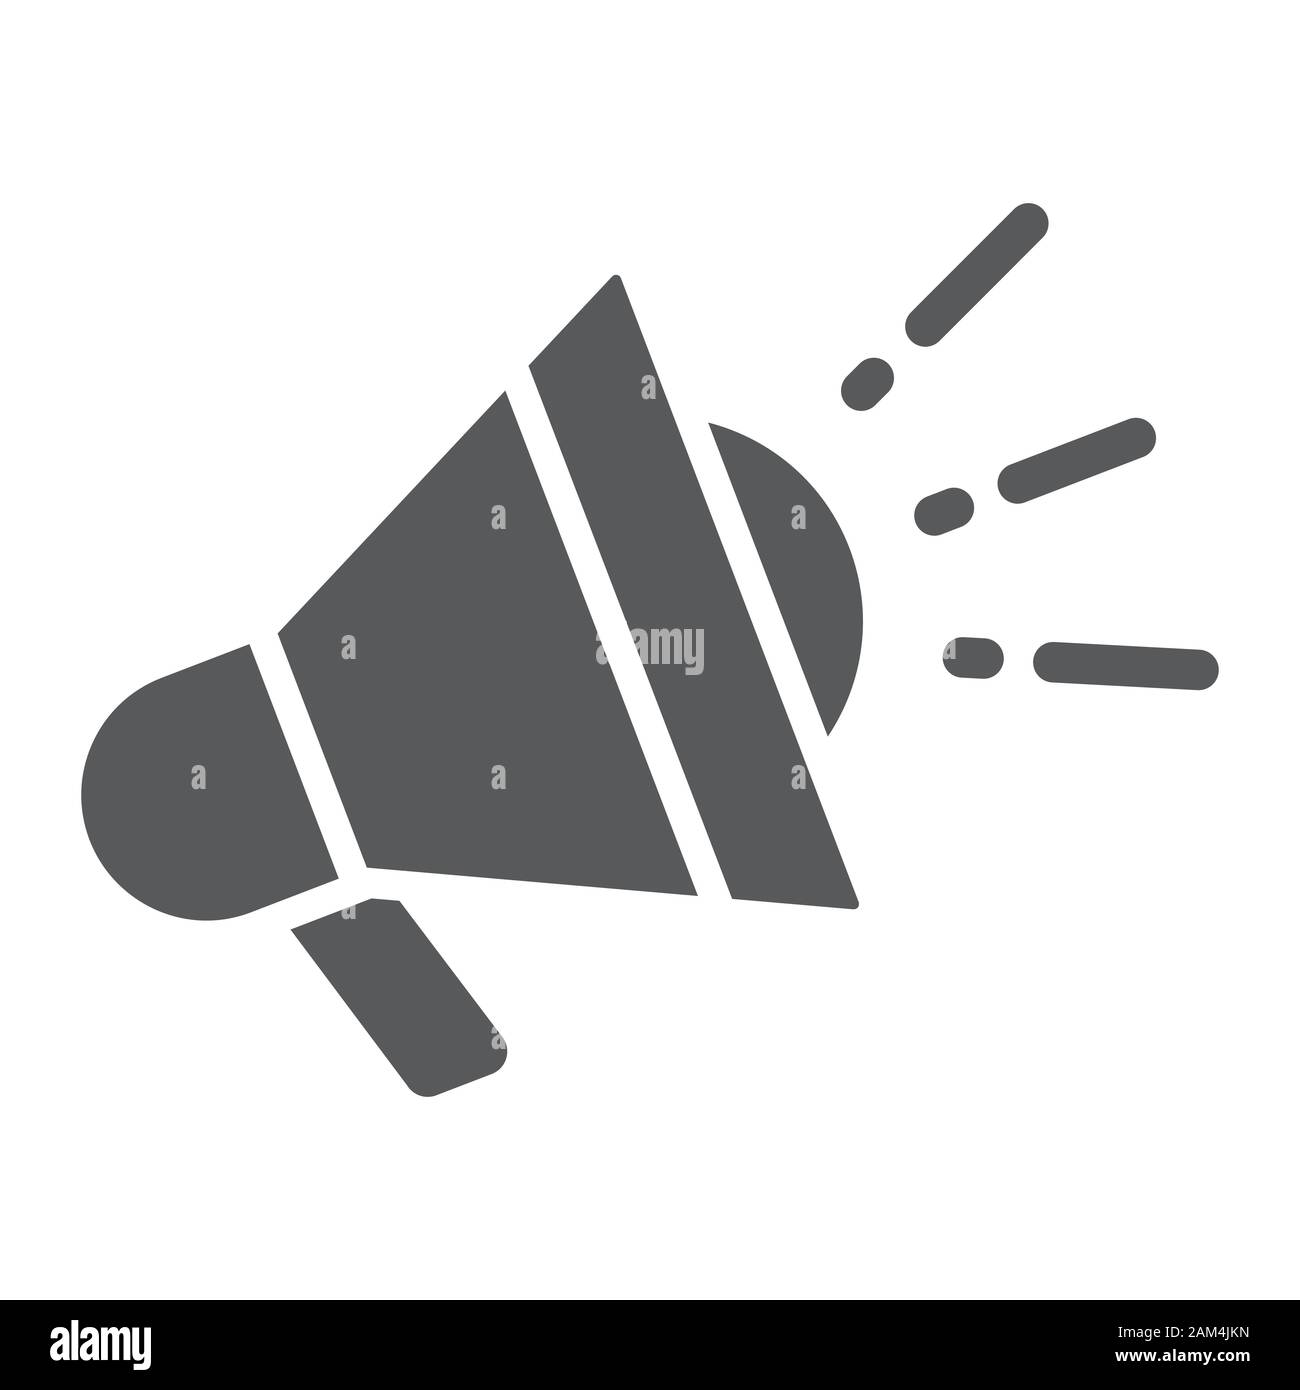 digital marketing glyph icon business and promotion megaphone sign vector graphics a solid pattern on a white background eps 10 stock vector image art alamy alamy